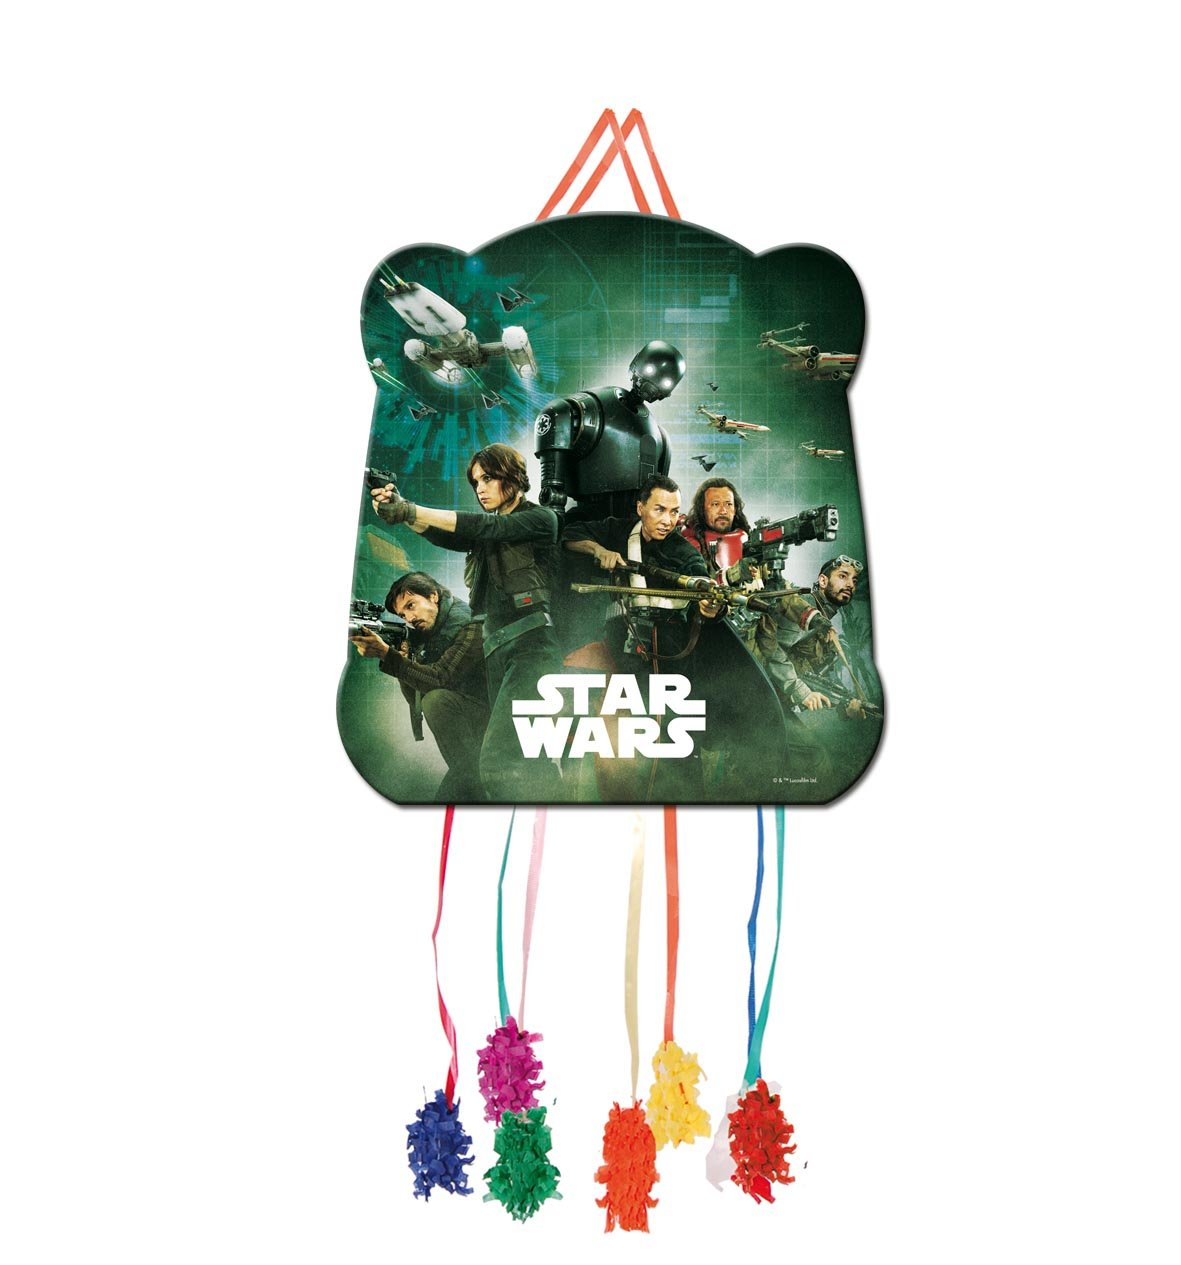 Piñata Basic Star Wars Rogue One: Amazon.es: Juguetes y juegos